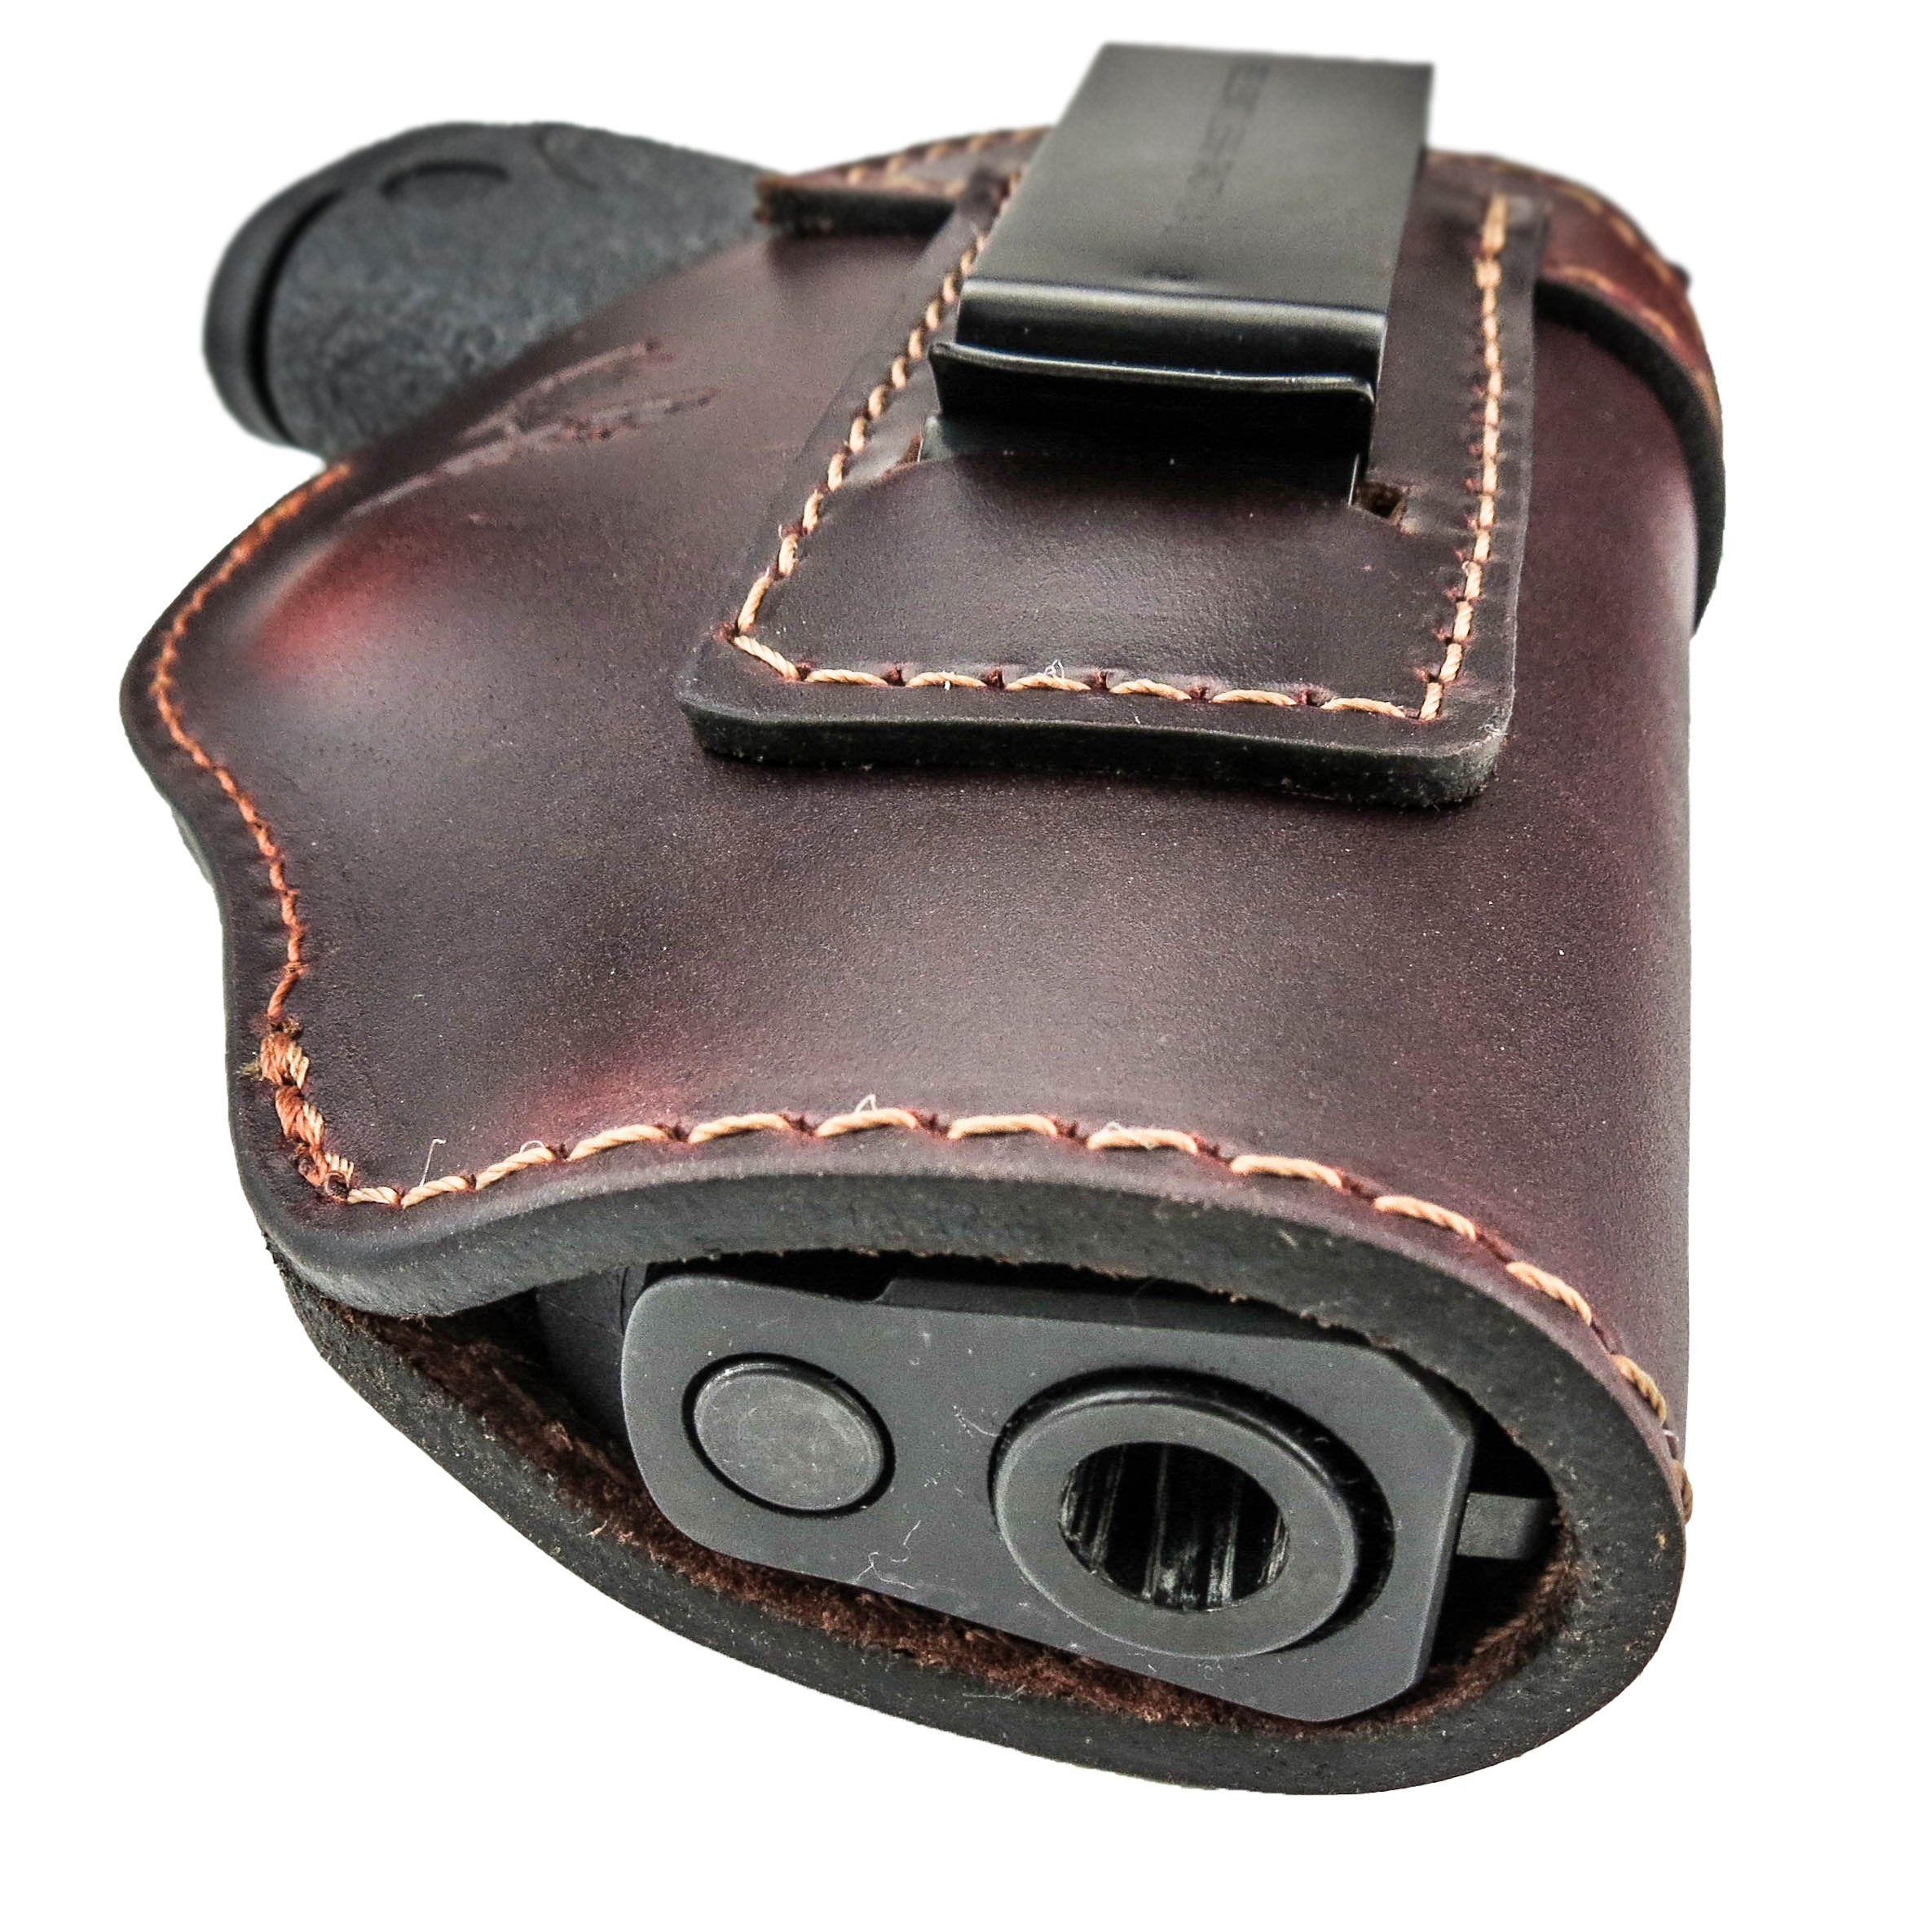 Relentless Tactical The Defender Leather IWB Holster - Made in USA - For S&W M&P Shield - GLOCK 17 19 22 23 32 33/Springfield XD & XDS/Plus All Similar Sized Handguns – Brown – Right Handed by Relentless Tactical (Image #5)